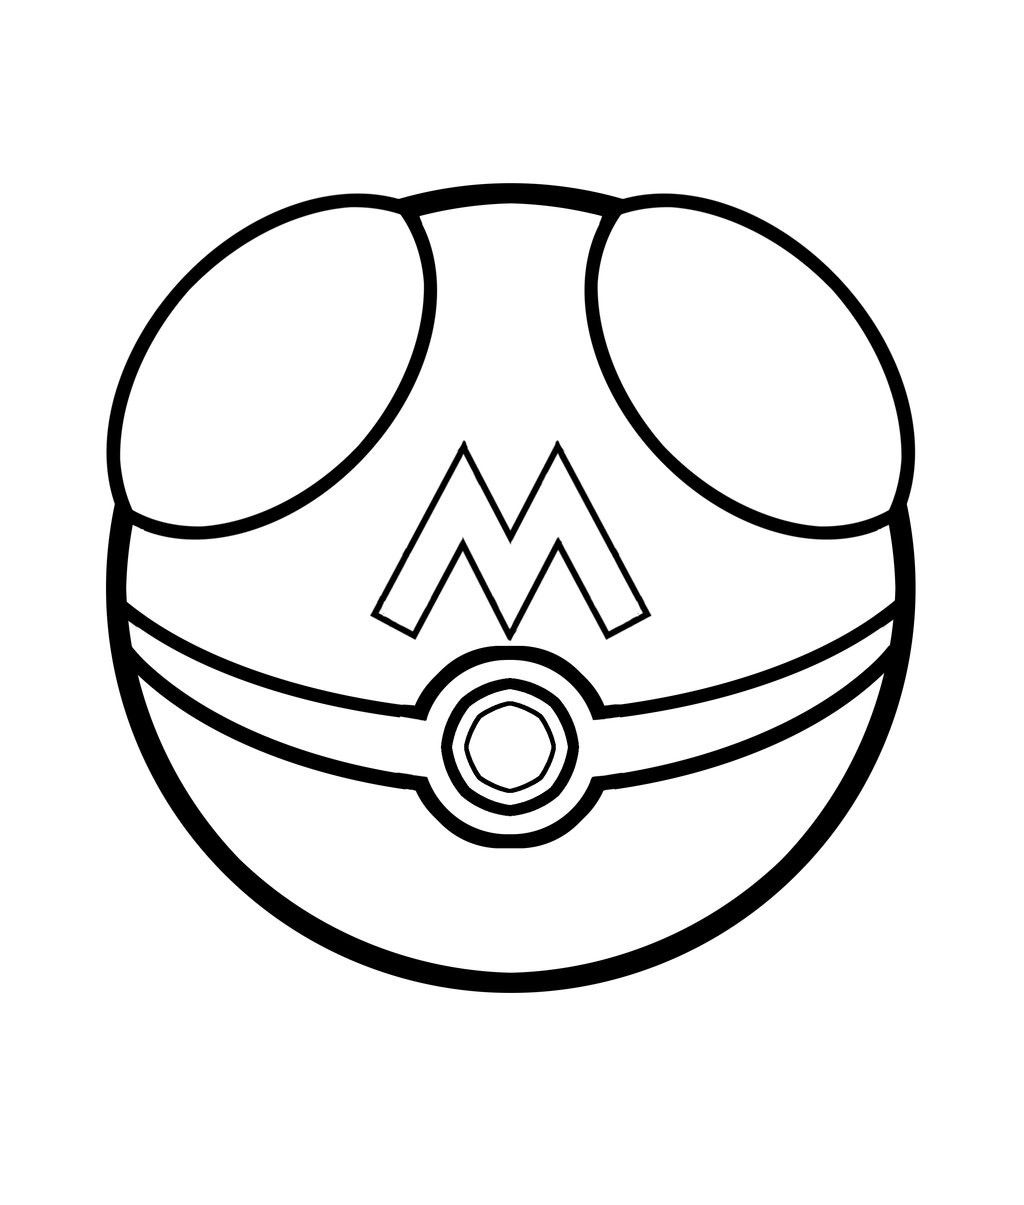 pokeball coloring pages Pokemon Coloring Pages Pokeball – From the thousands of pictures  pokeball coloring pages